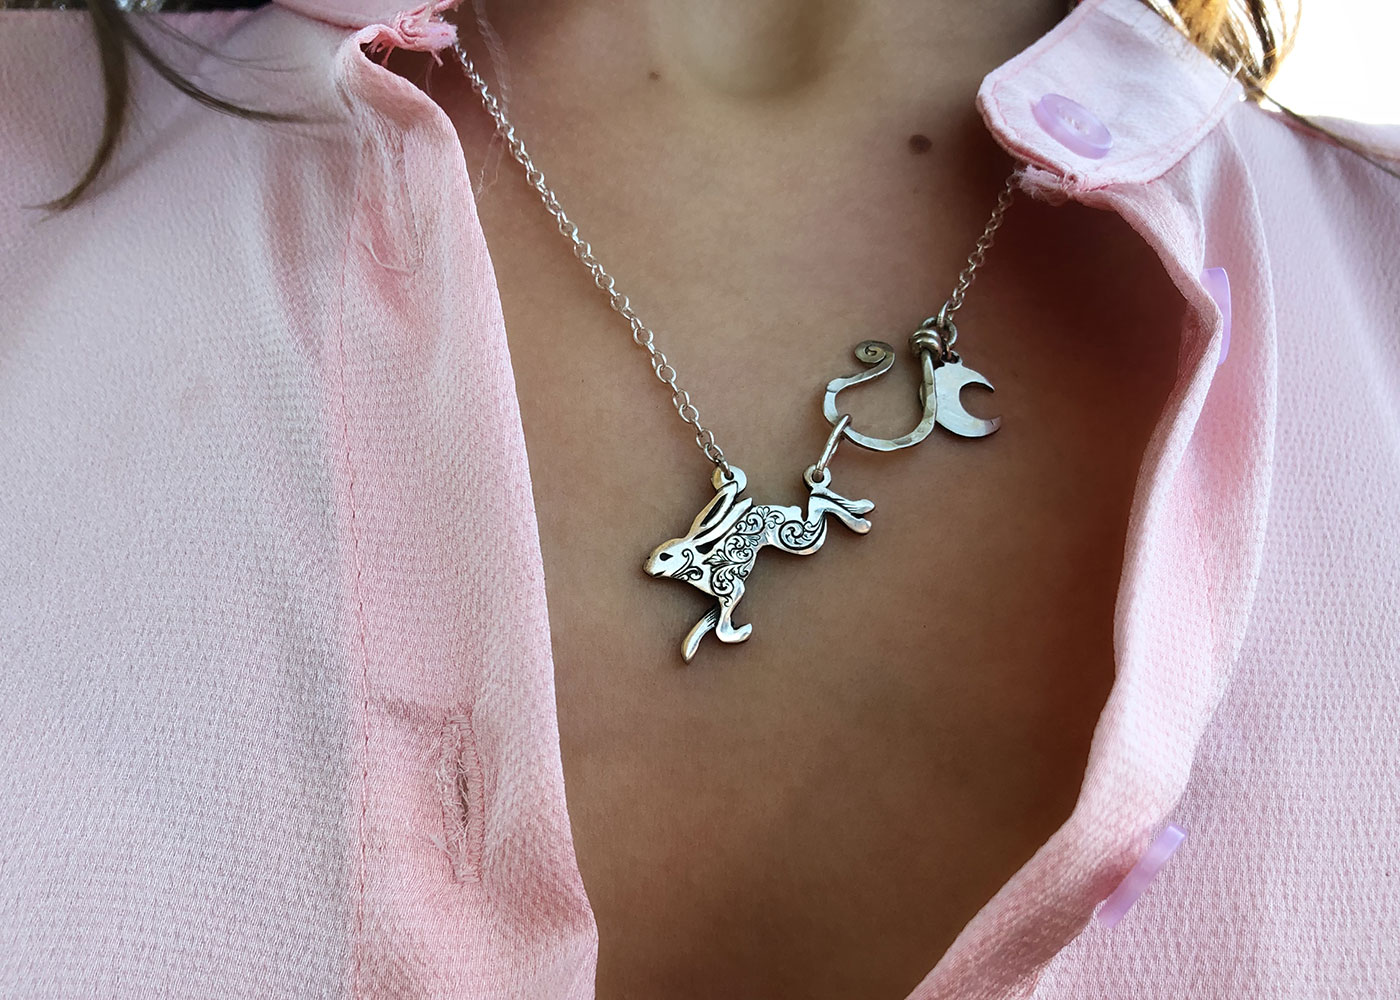 Leaping hare necklace handmade and recycled silver coin jewellery ethically handcrafted at an independant artisan studio workshop